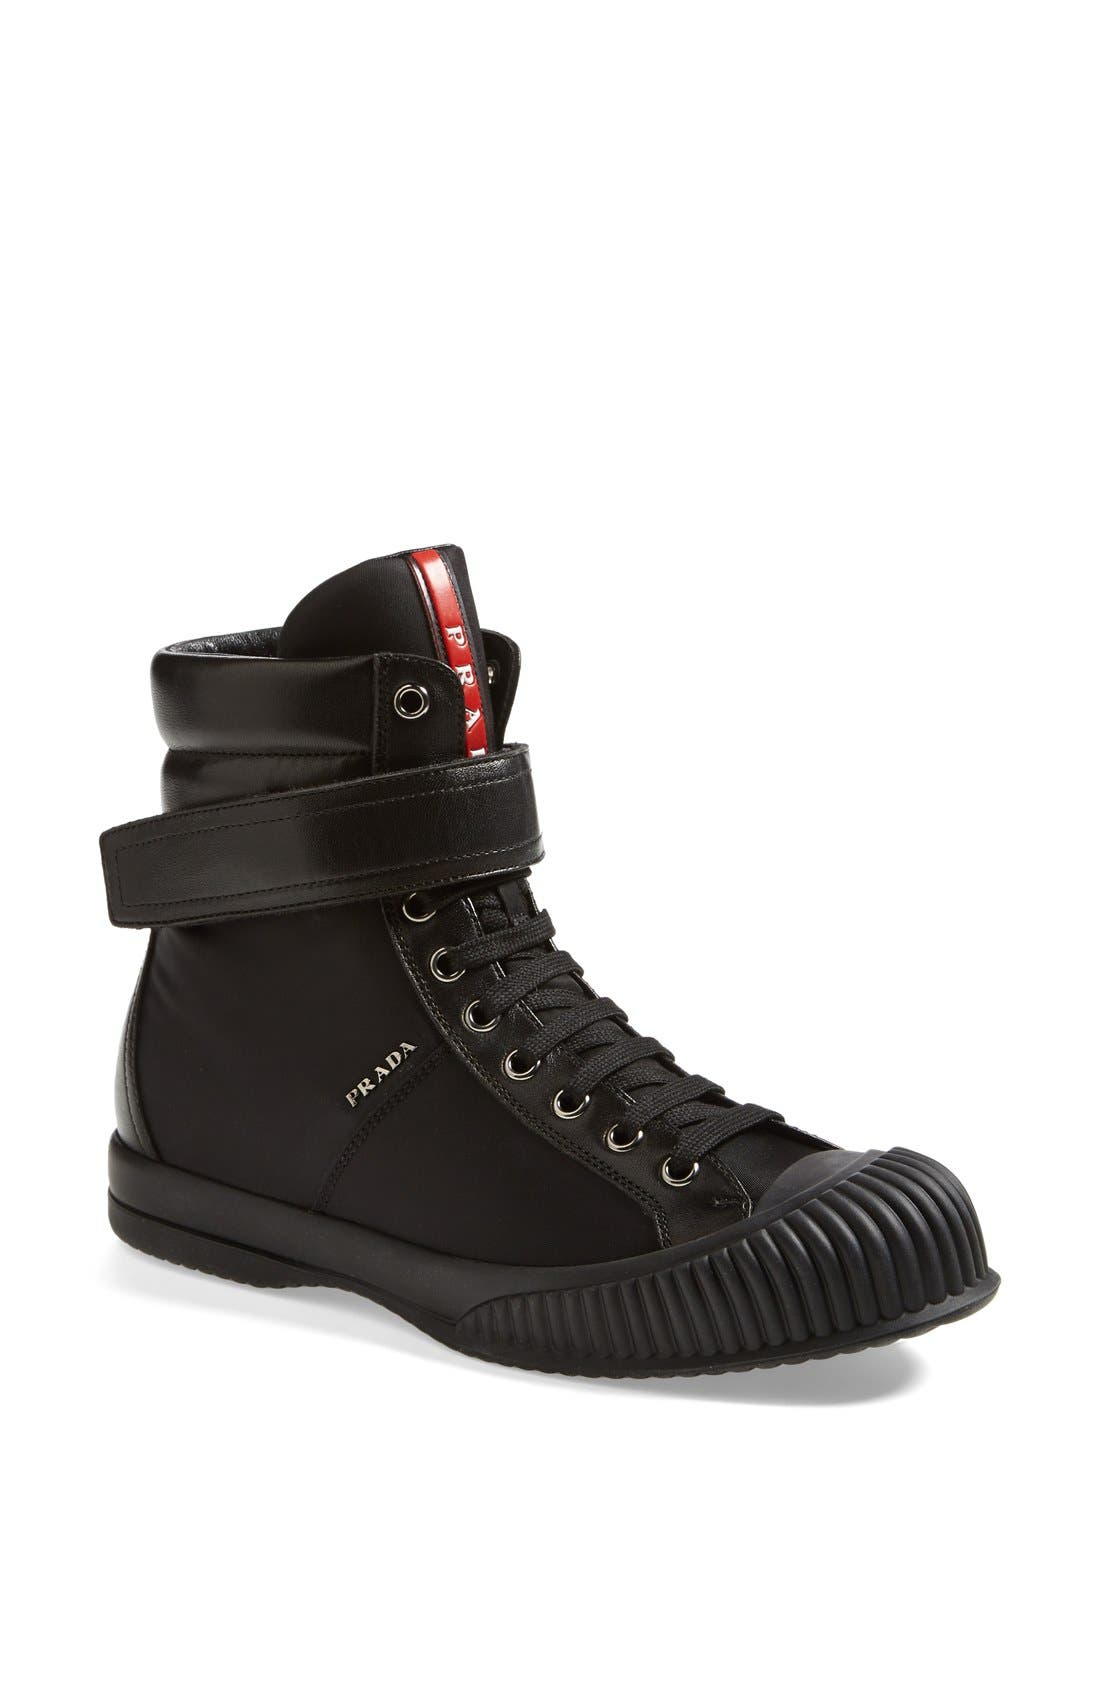 Main Image - Prada Sport High Top Sneaker (Women)